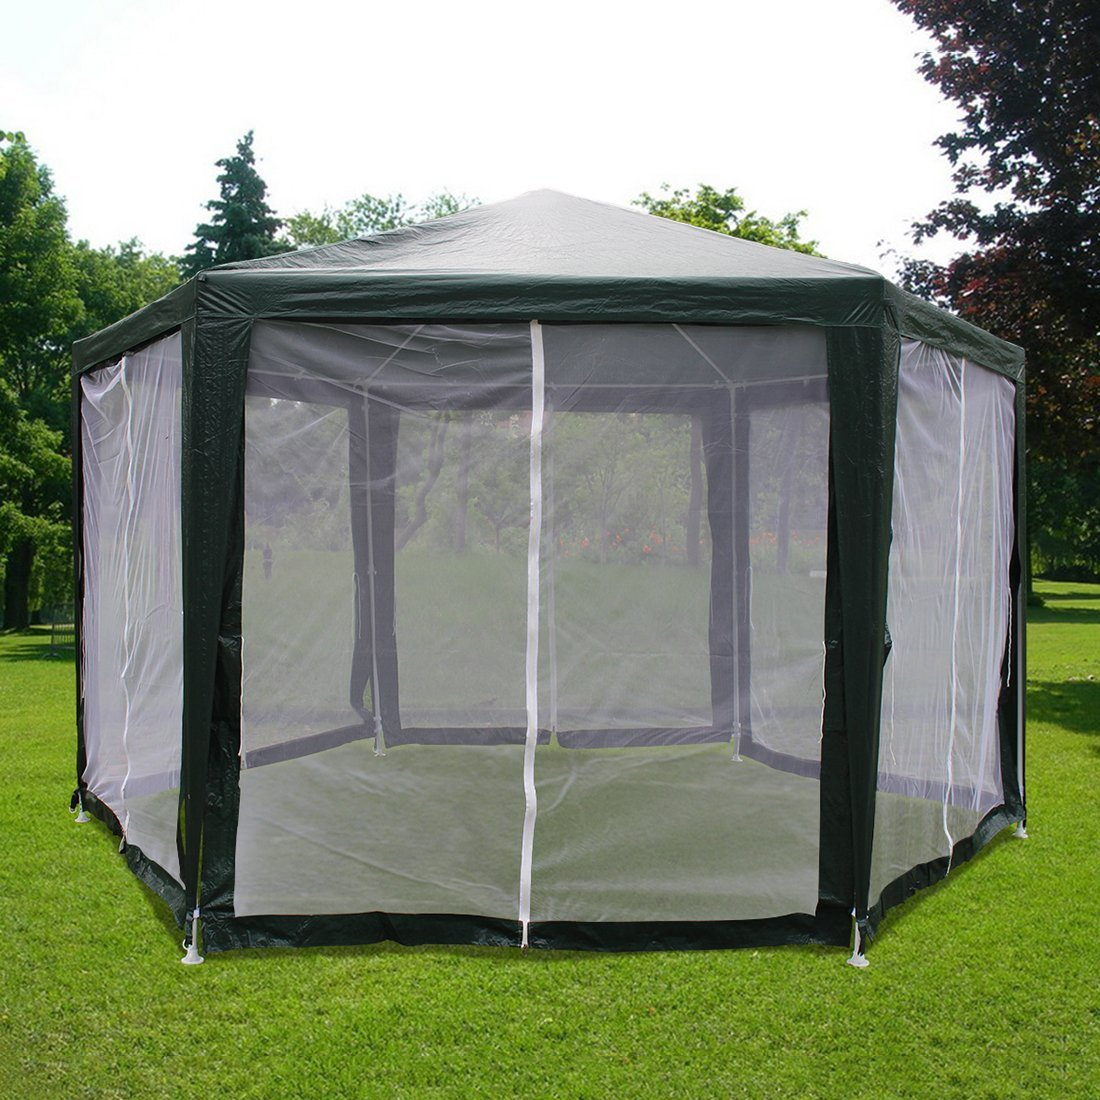 Quictent Outdoor Canopy Gazebo Party Wedding tent Screen House Sun Shade Shelter with Fully Enclosed Mesh & Quictent Outdoor Canopy Gazebo Party Wedding tent Screen House Sun ...